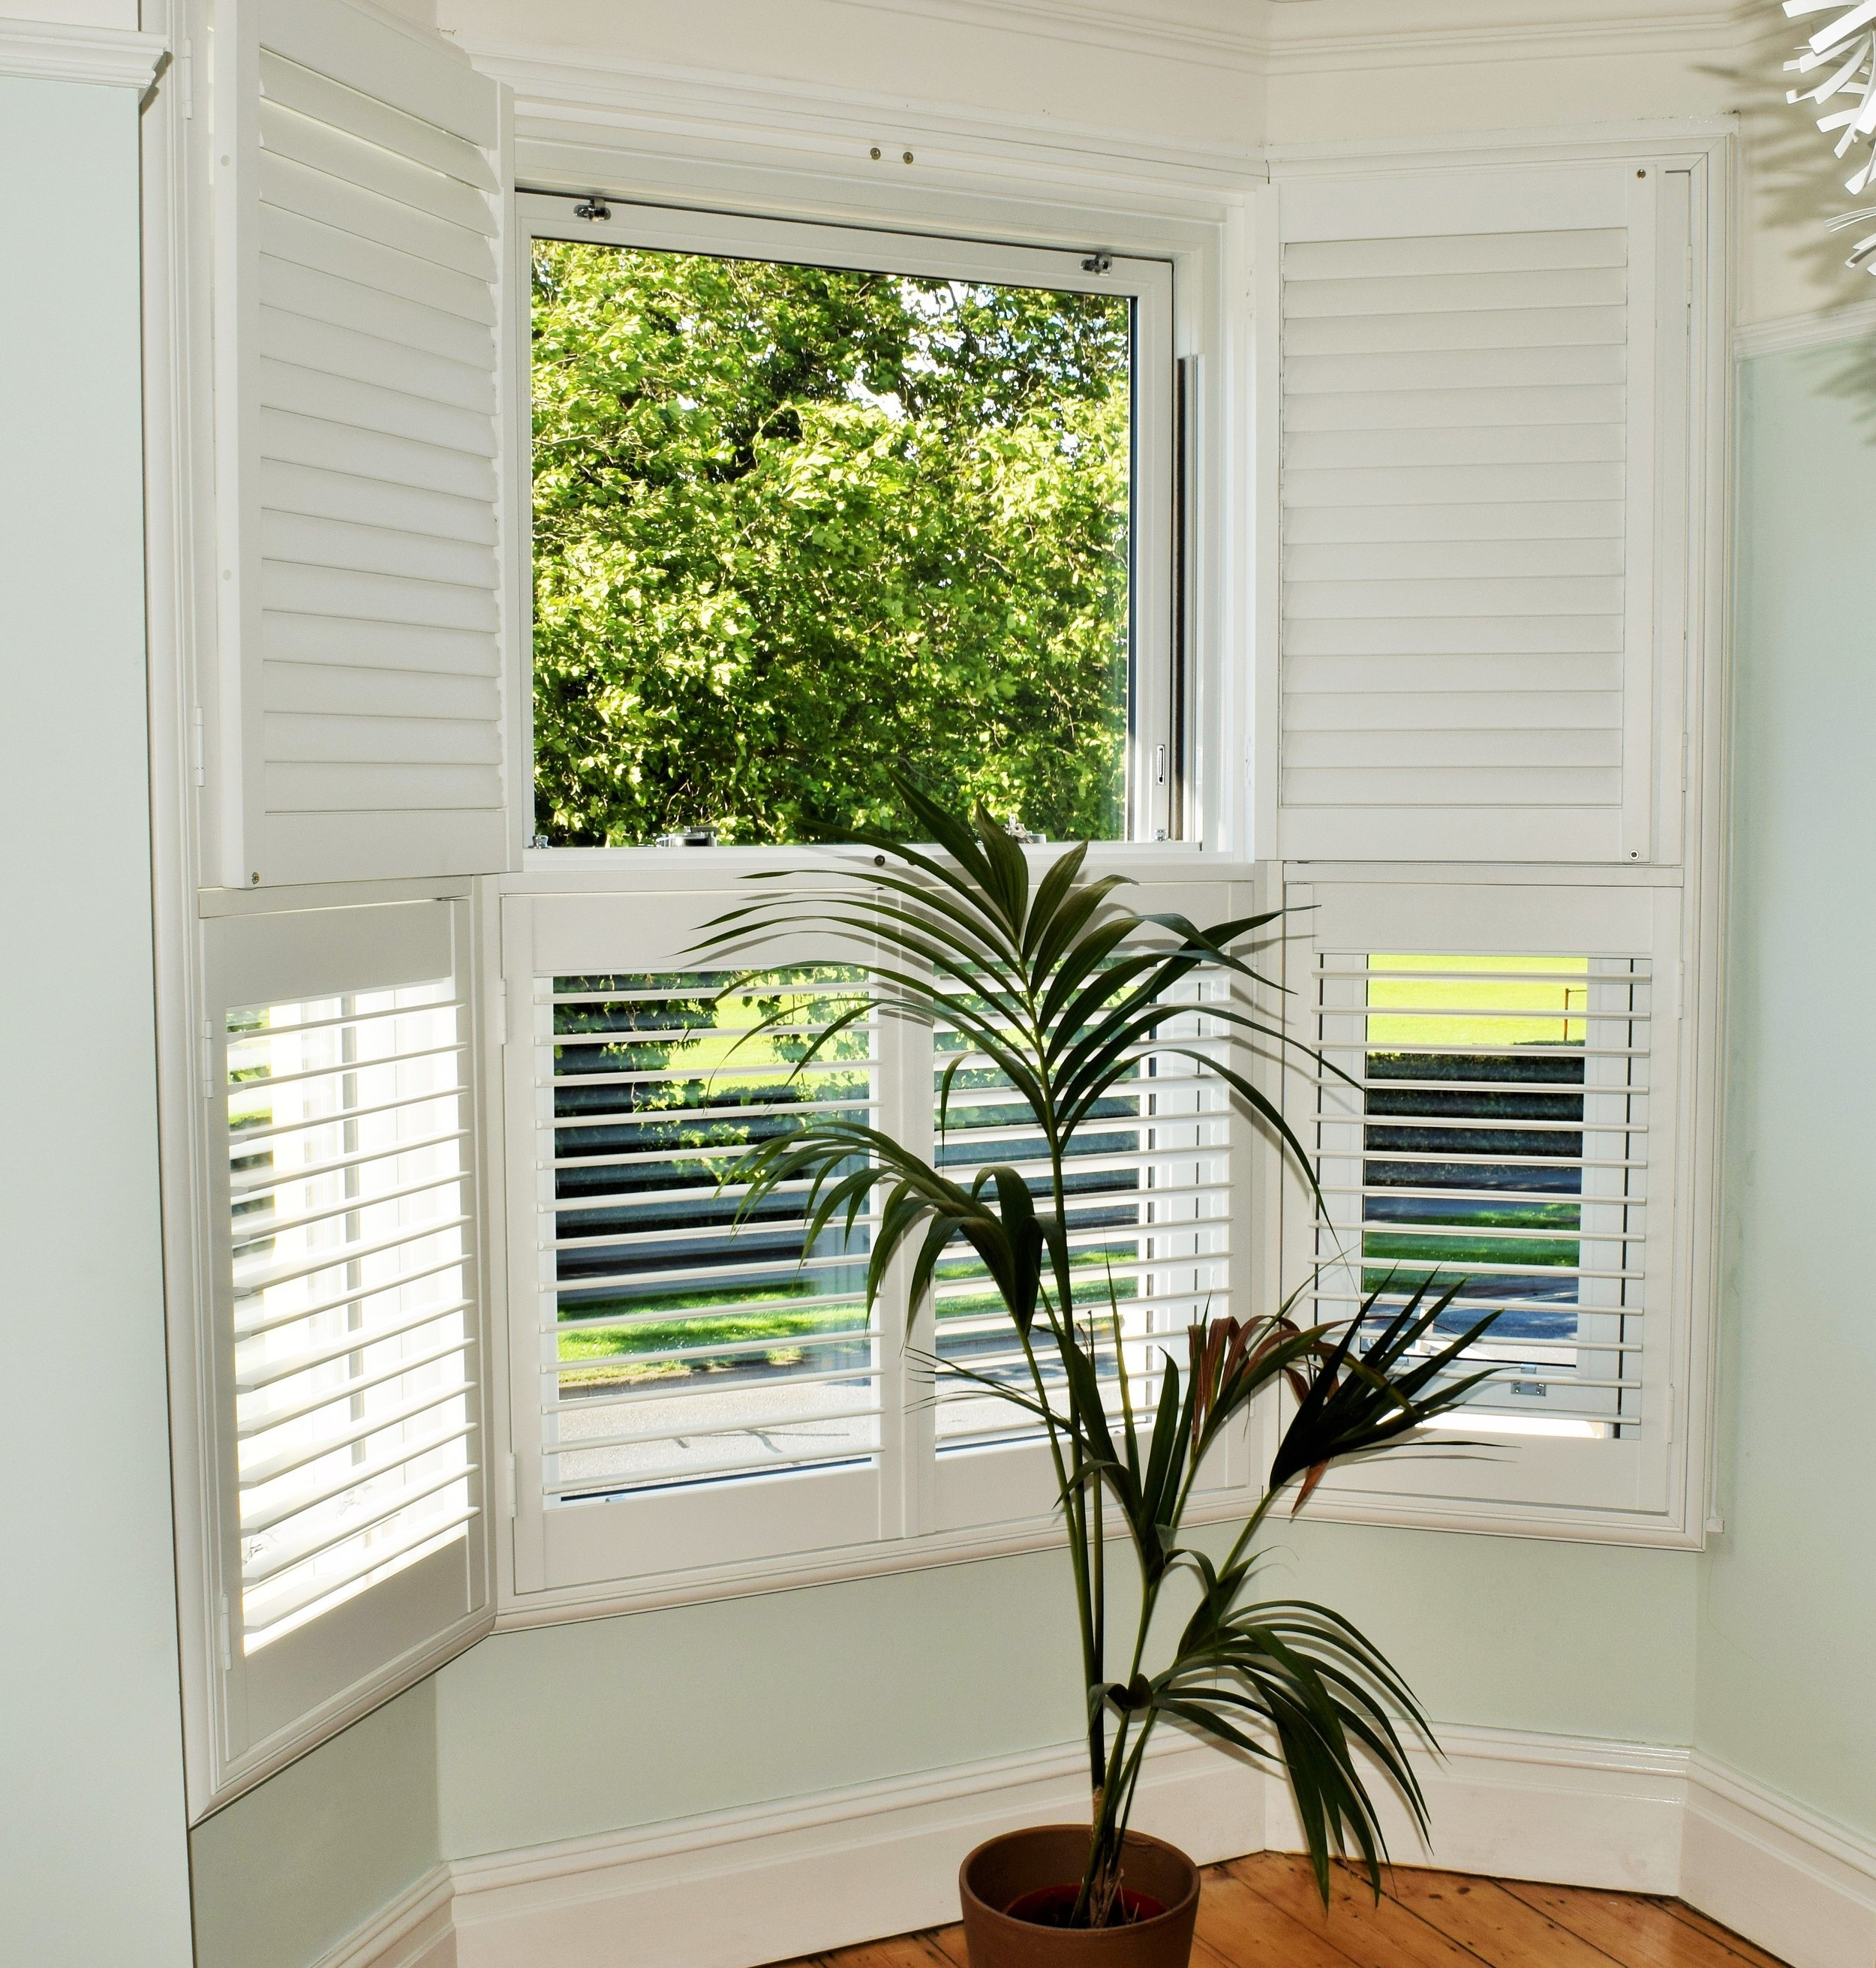 Bay window plantation shutters tier on tier Portsmouth Hampshire.JPG